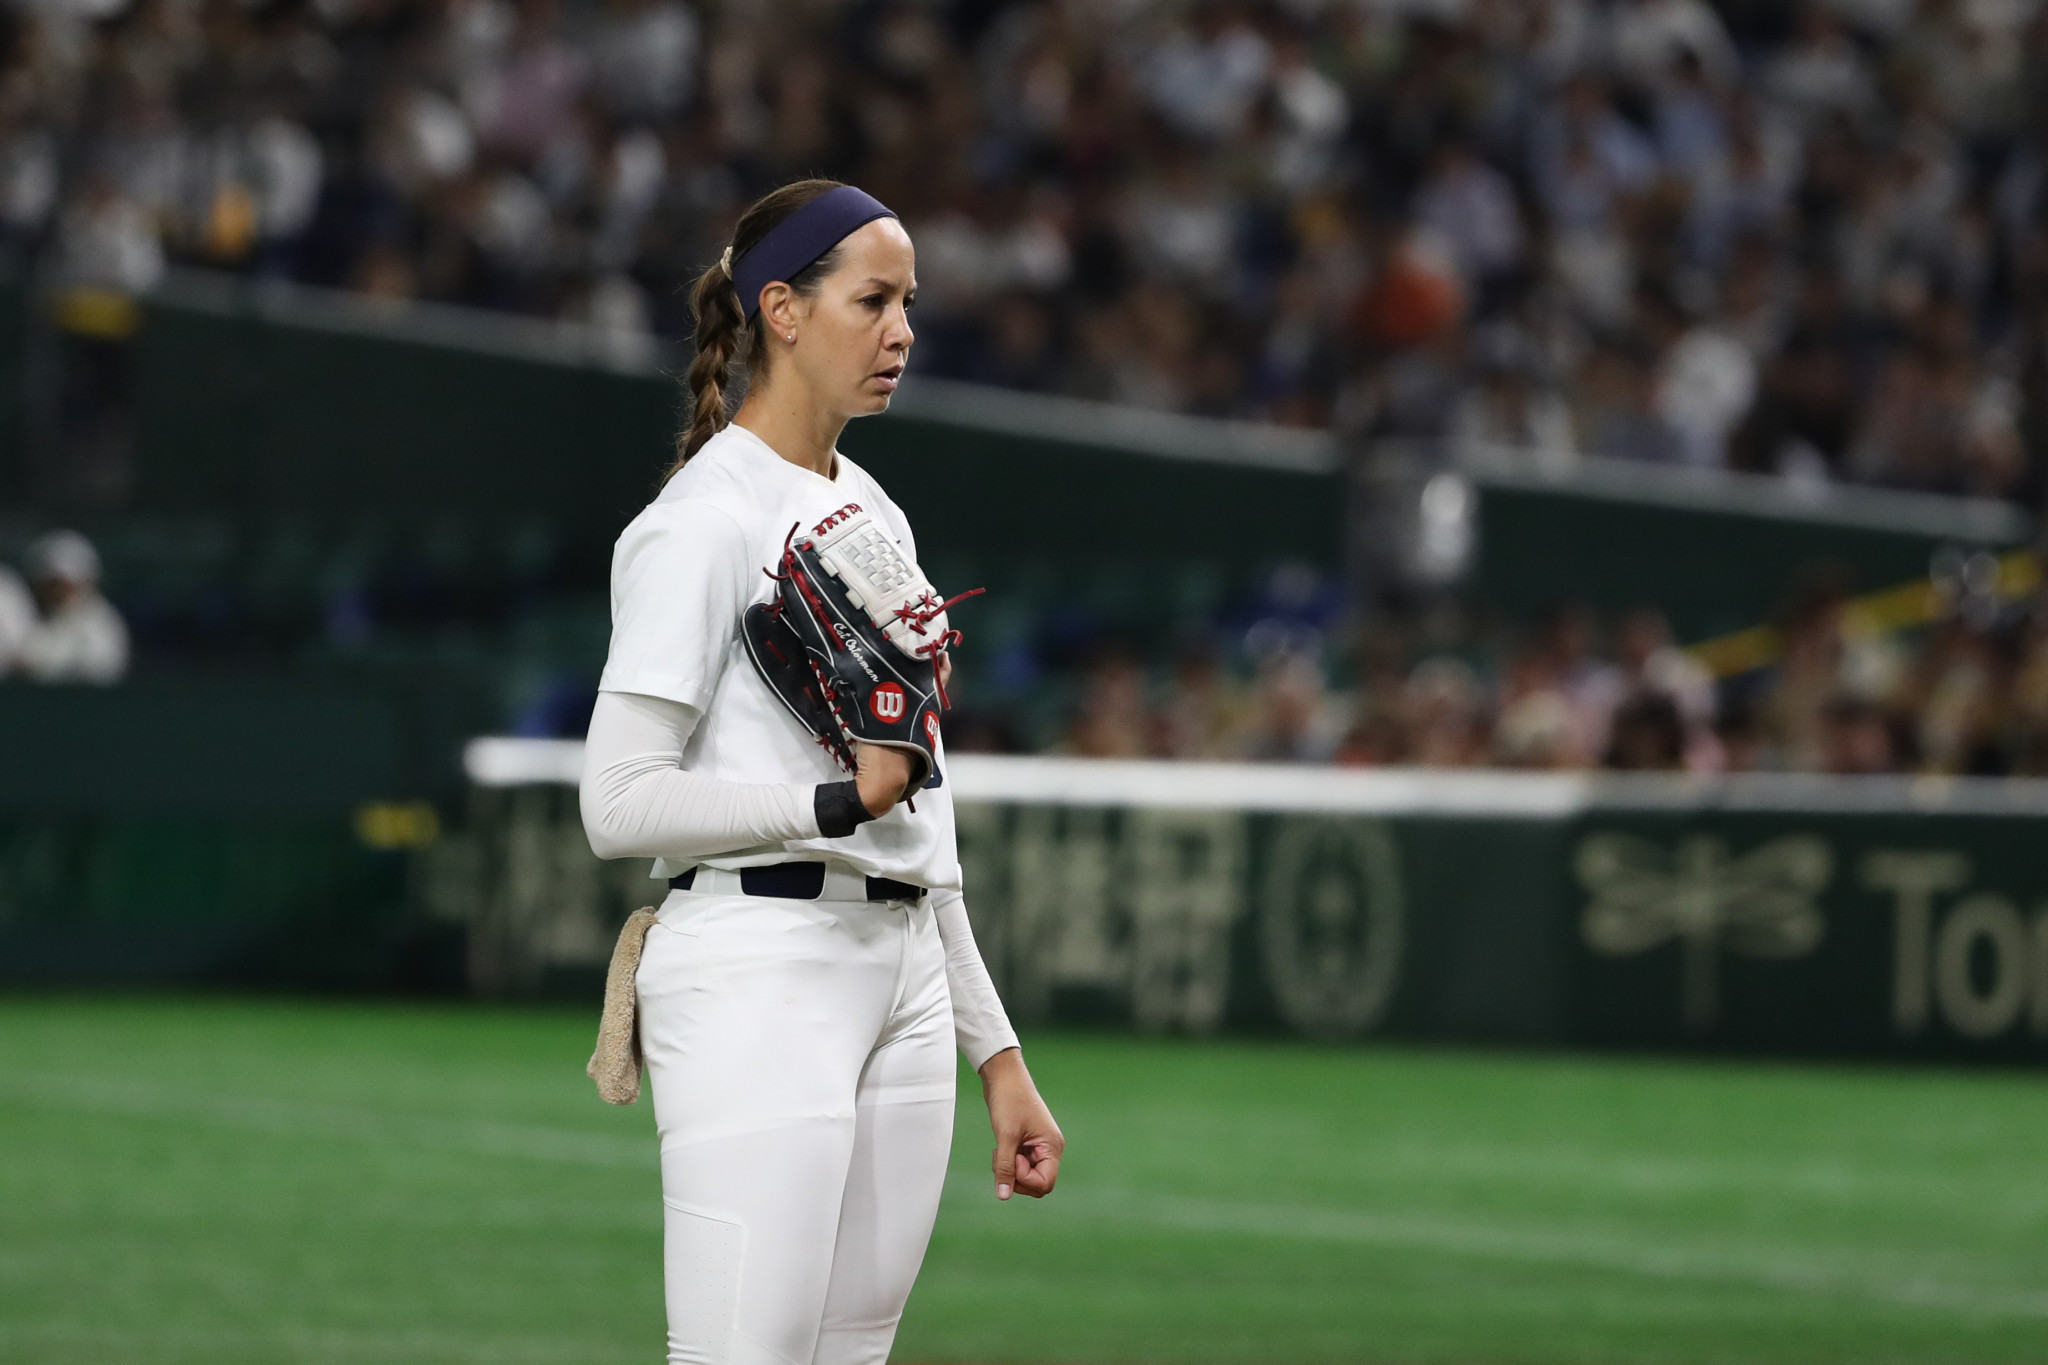 Cat Osterman will attempt to win a second Olympic gold medal at Tokyo 2020 - 17 years after her first ©Getty Images